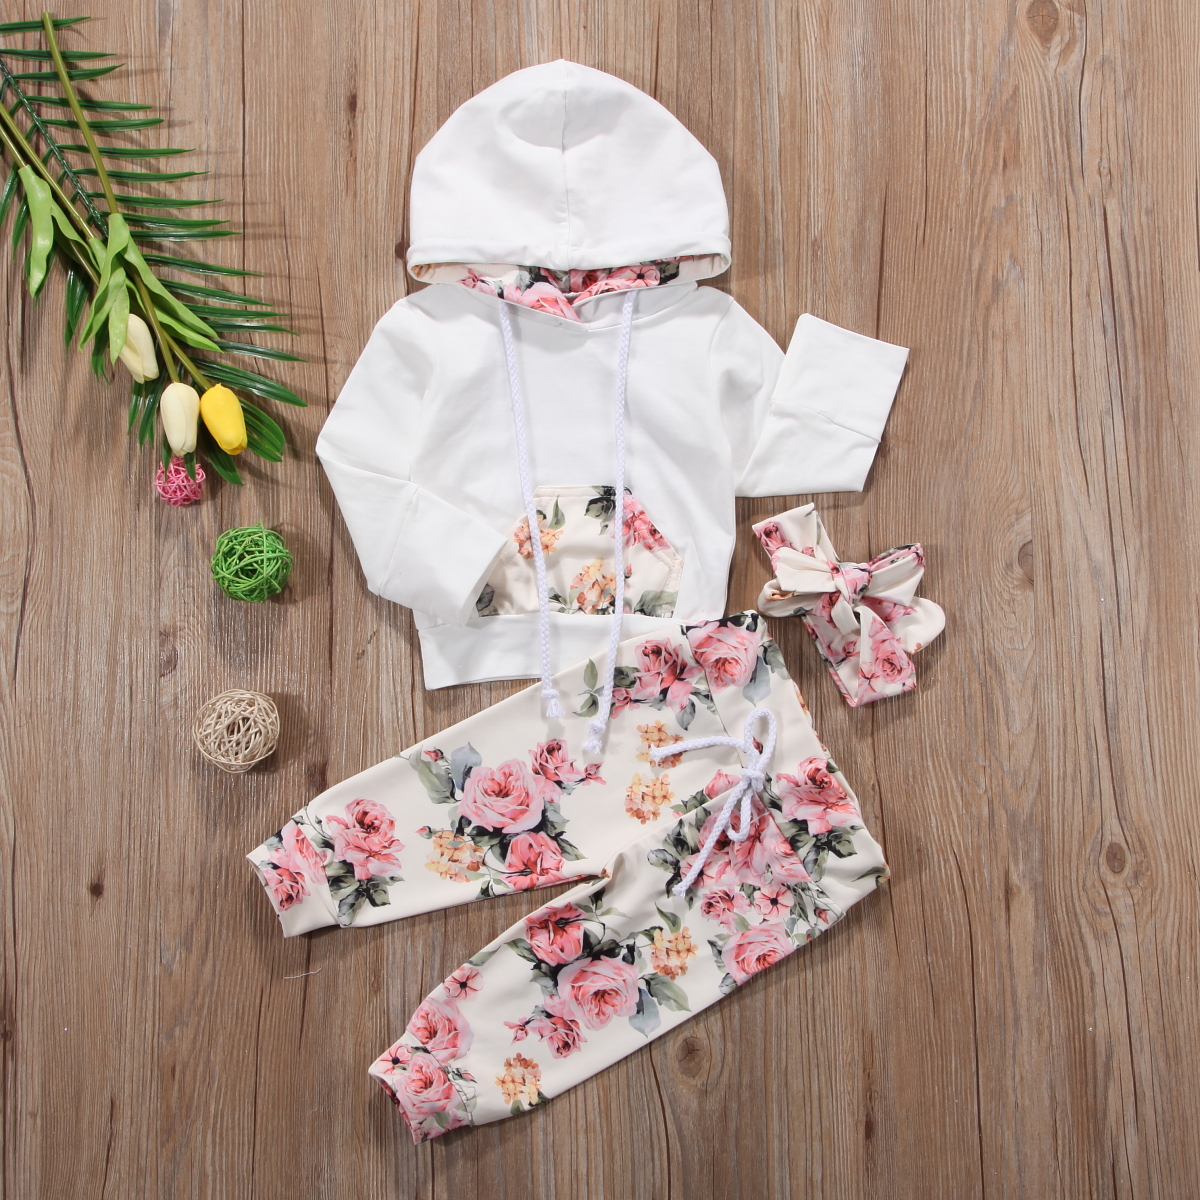 Us 6 79 Spring Newborn Baby Girls Sport White Winter Fall Comfort Outfits Clothes Sweat Shirt Hoodies Floral Pants Set In Clothing Sets From Mother